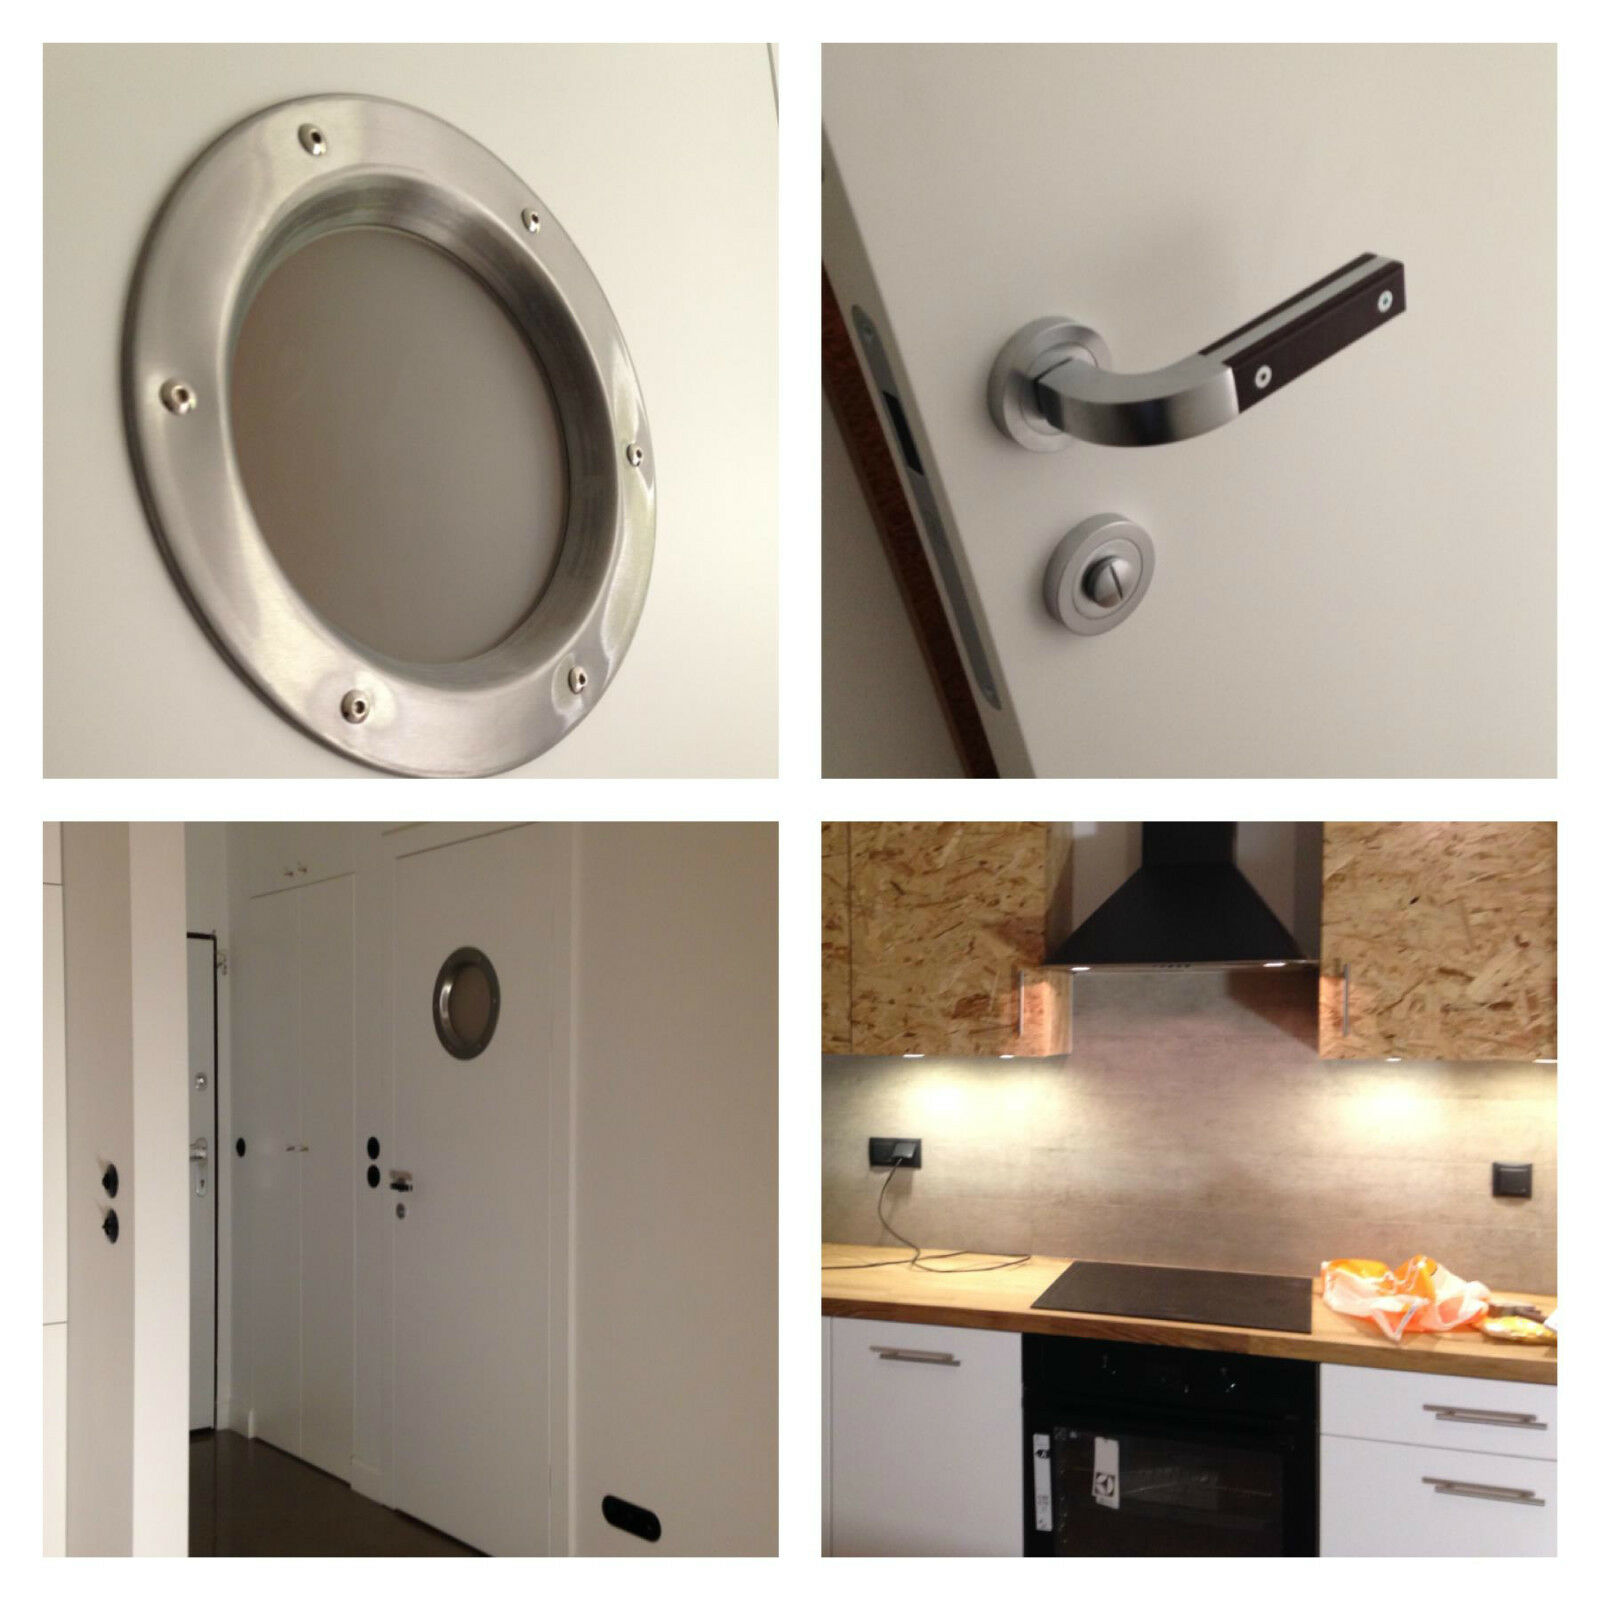 STAINLESS STEEL PORTHOLE VISION PANELS FOR DOORS phi 350 mm.Wonderful.